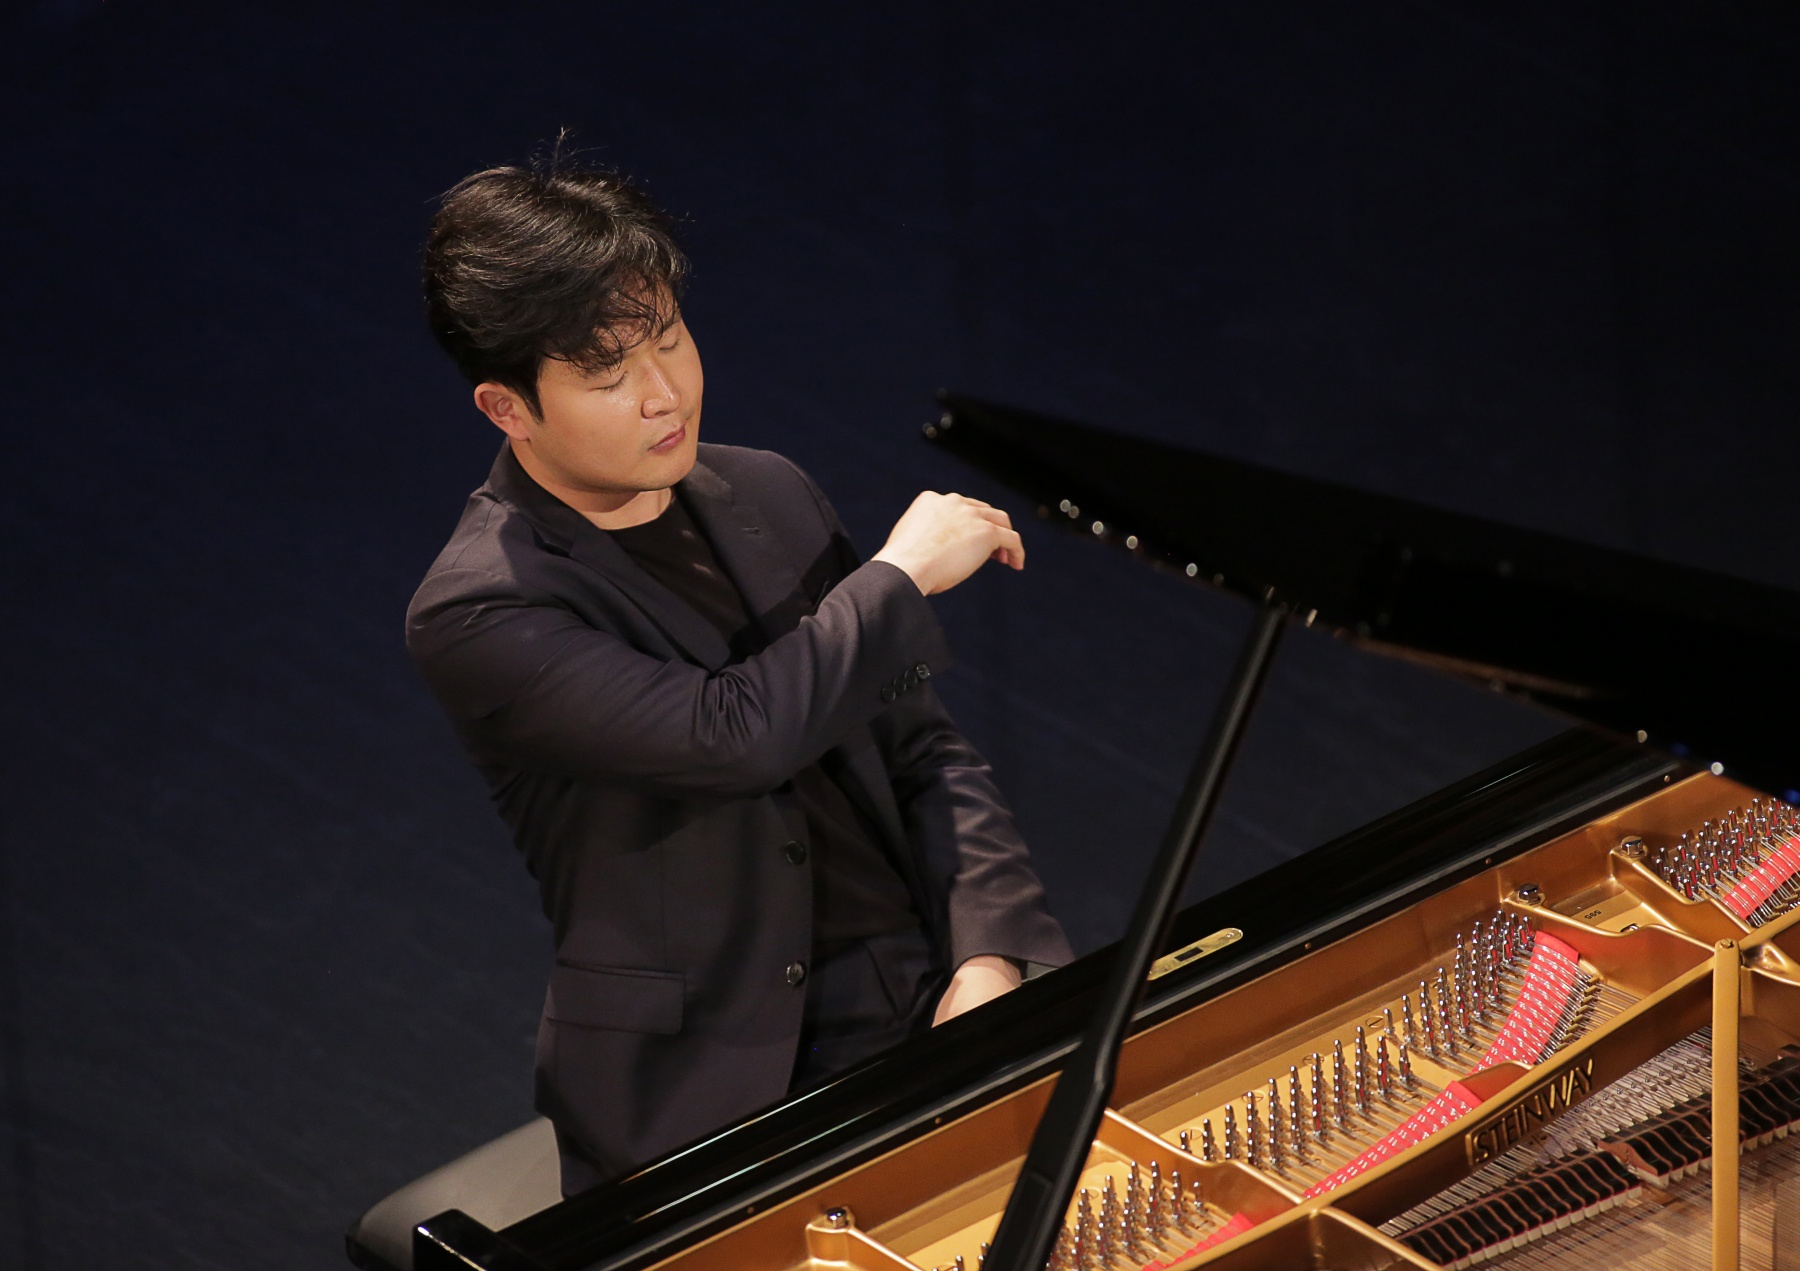 The Washington Post: Korean pianist shows there is musical life beyond winning competitions